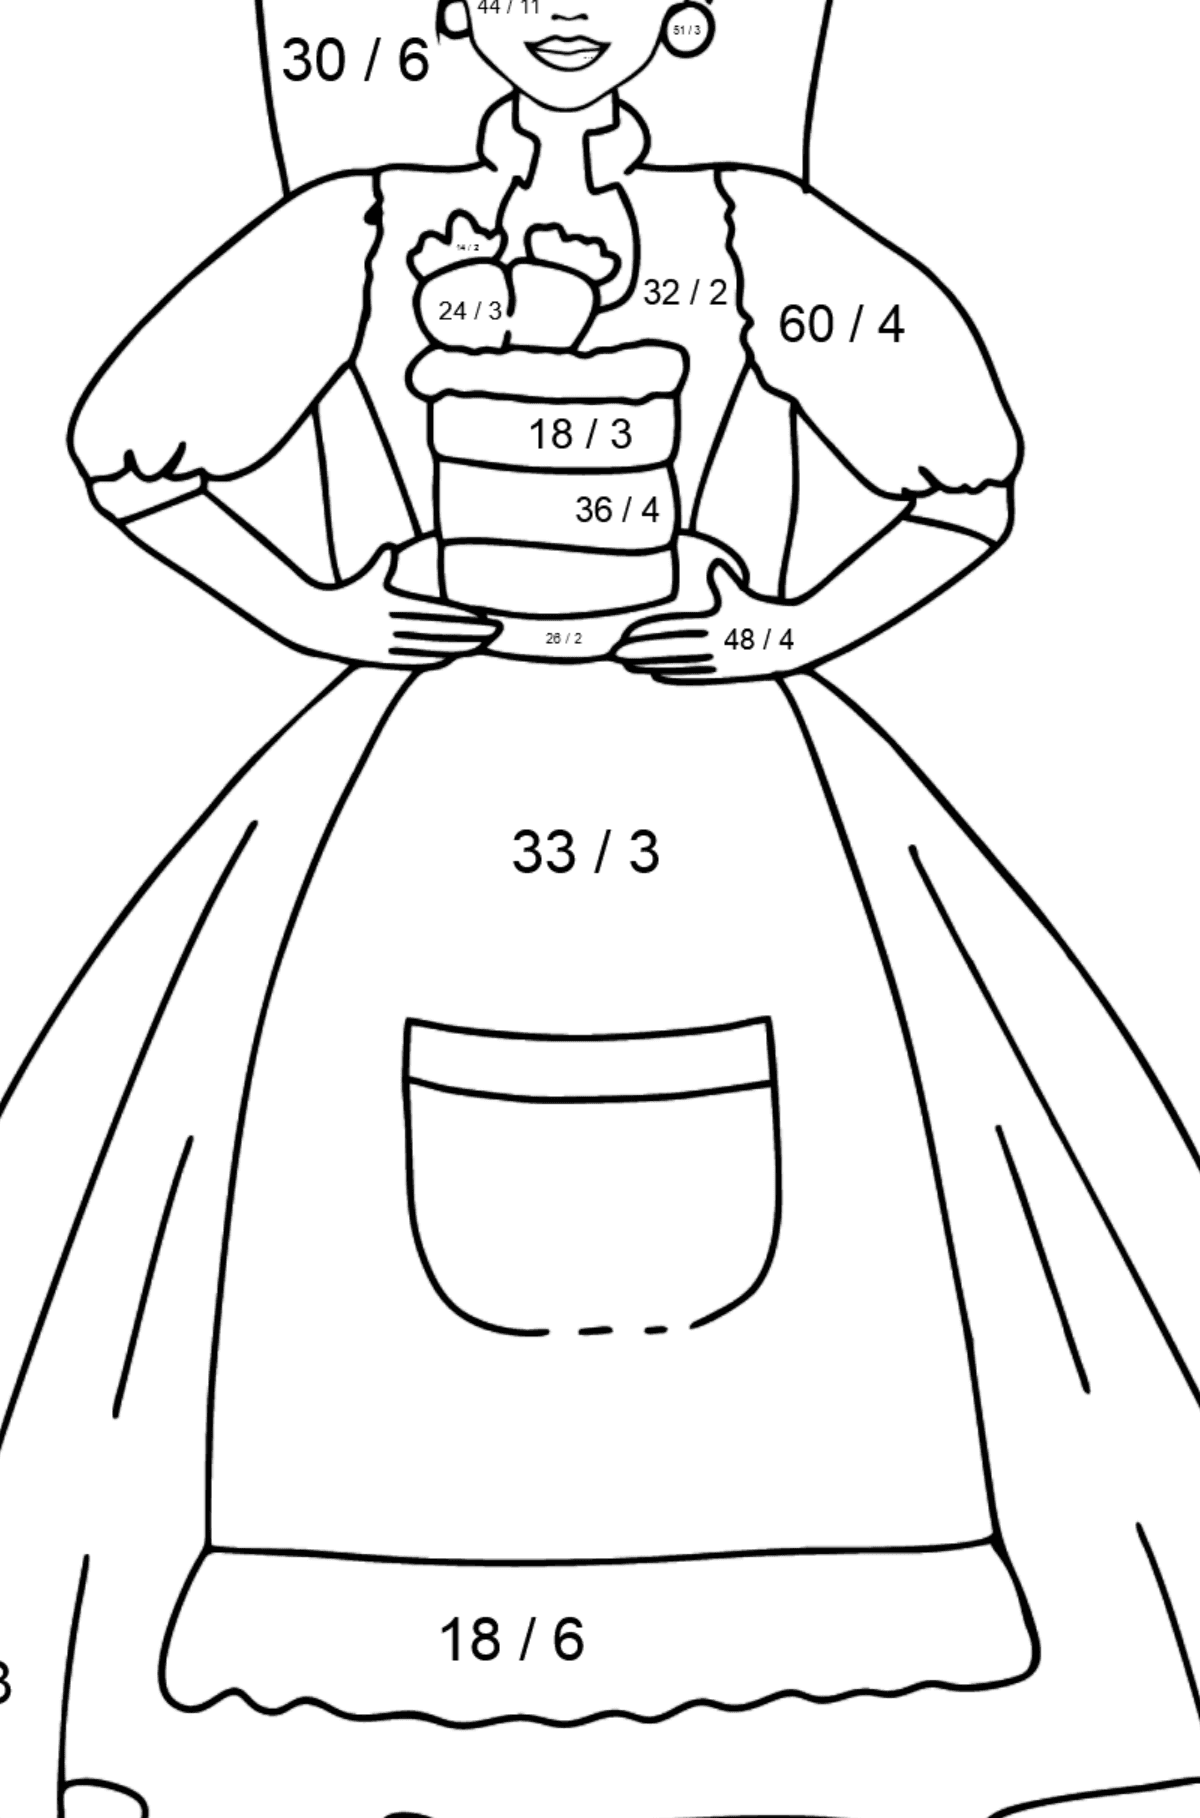 Barbie Doll and Cake coloring page - Math Coloring - Division for Kids